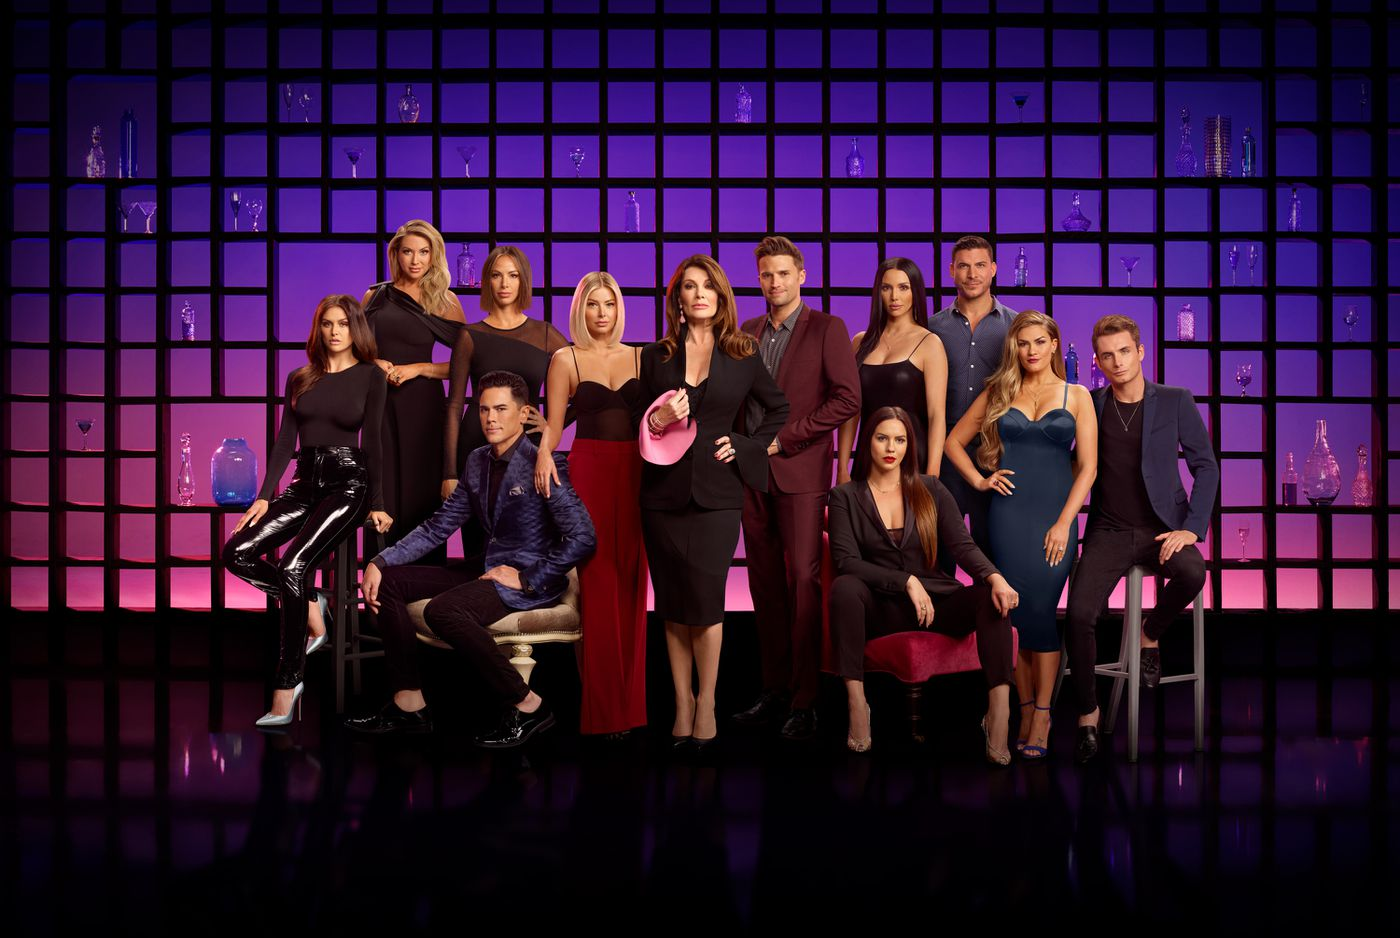 Why the cast of Vanderpump Rules will sell you anything - Vox